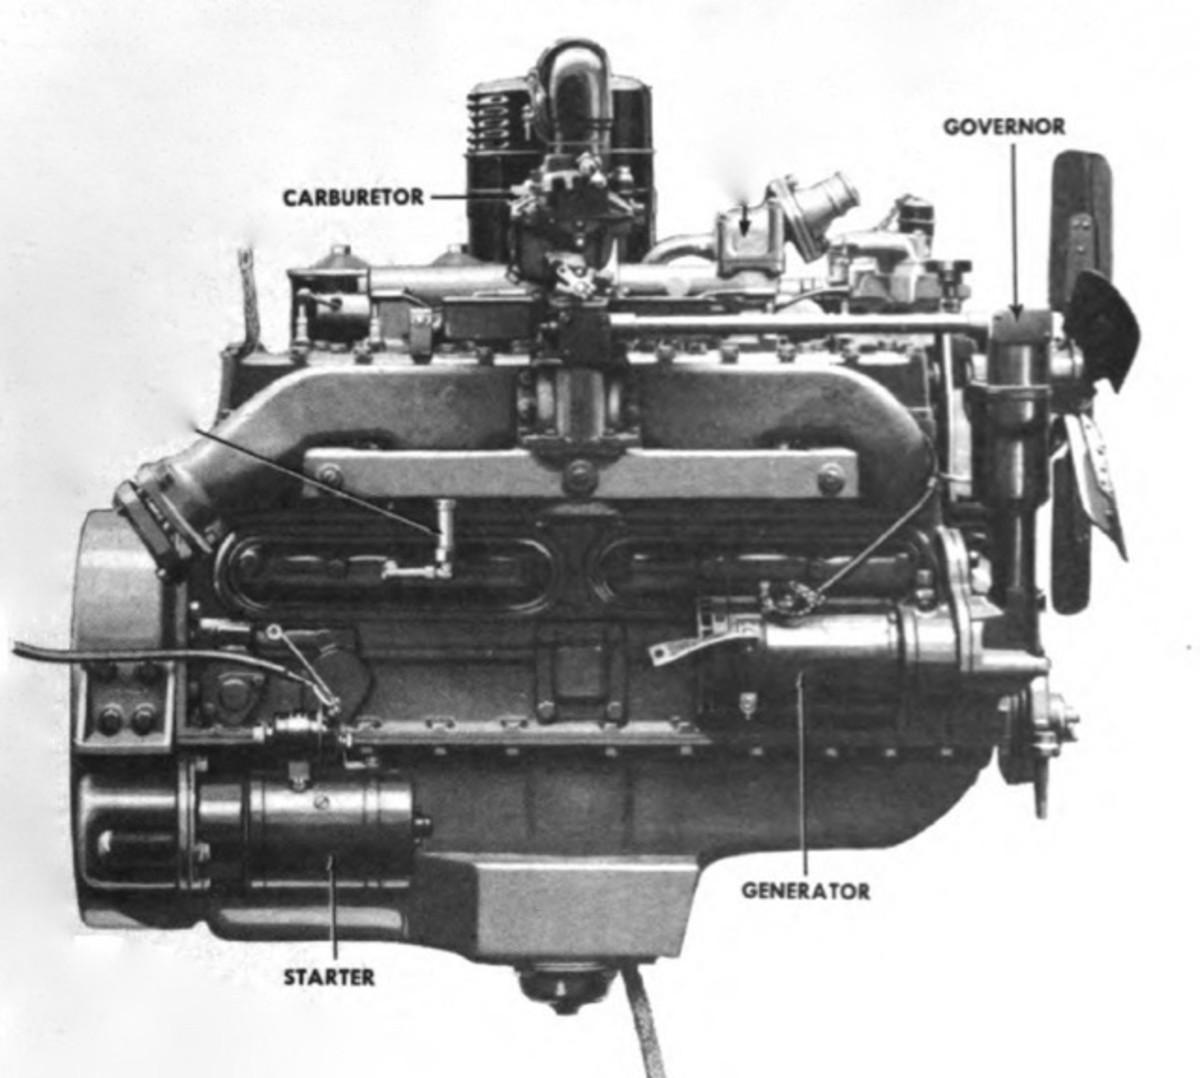 The Model 968 was fitted with a larger, more powerful Hercules RXC engine